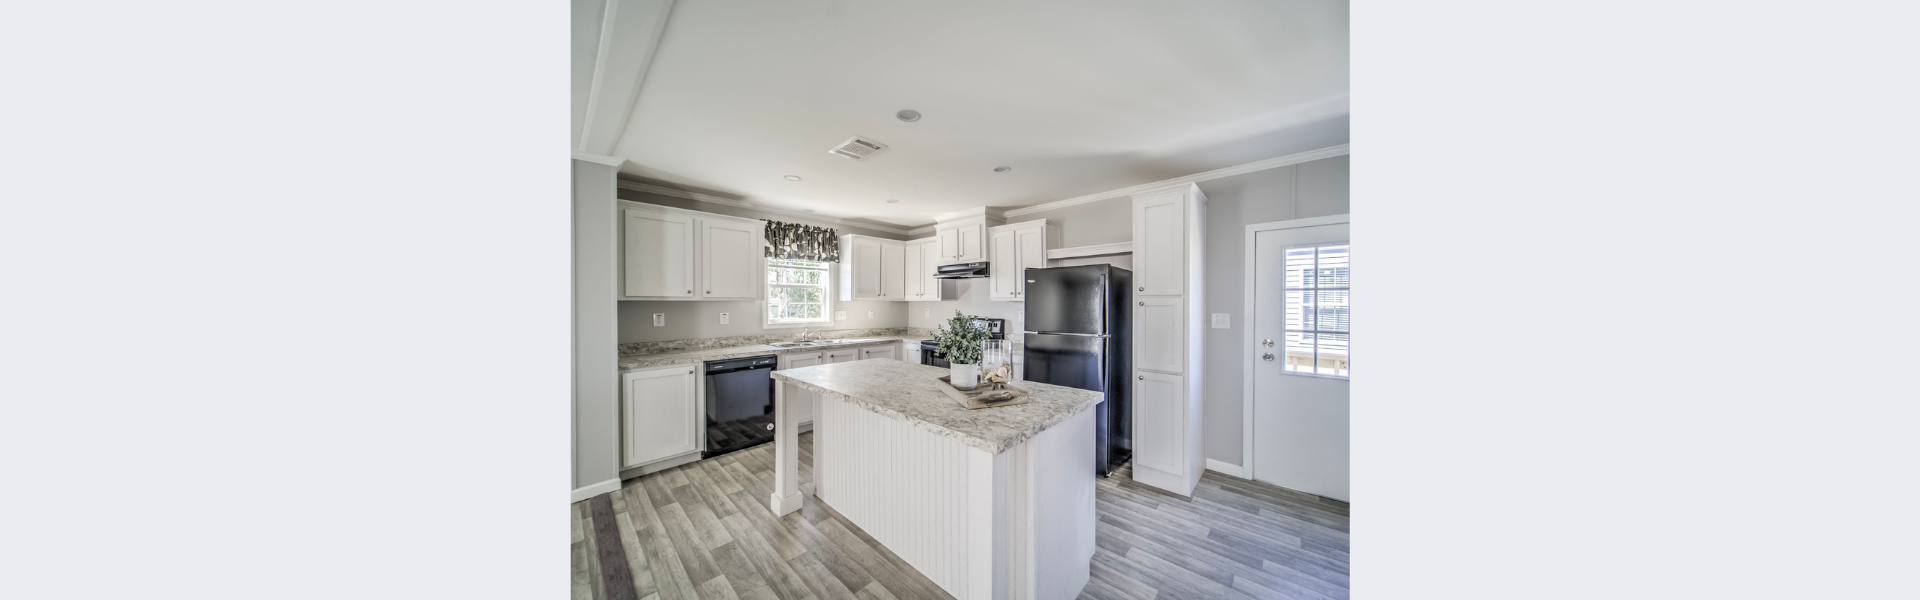 Brand New Customizable Mobile Homes at Citrus Center